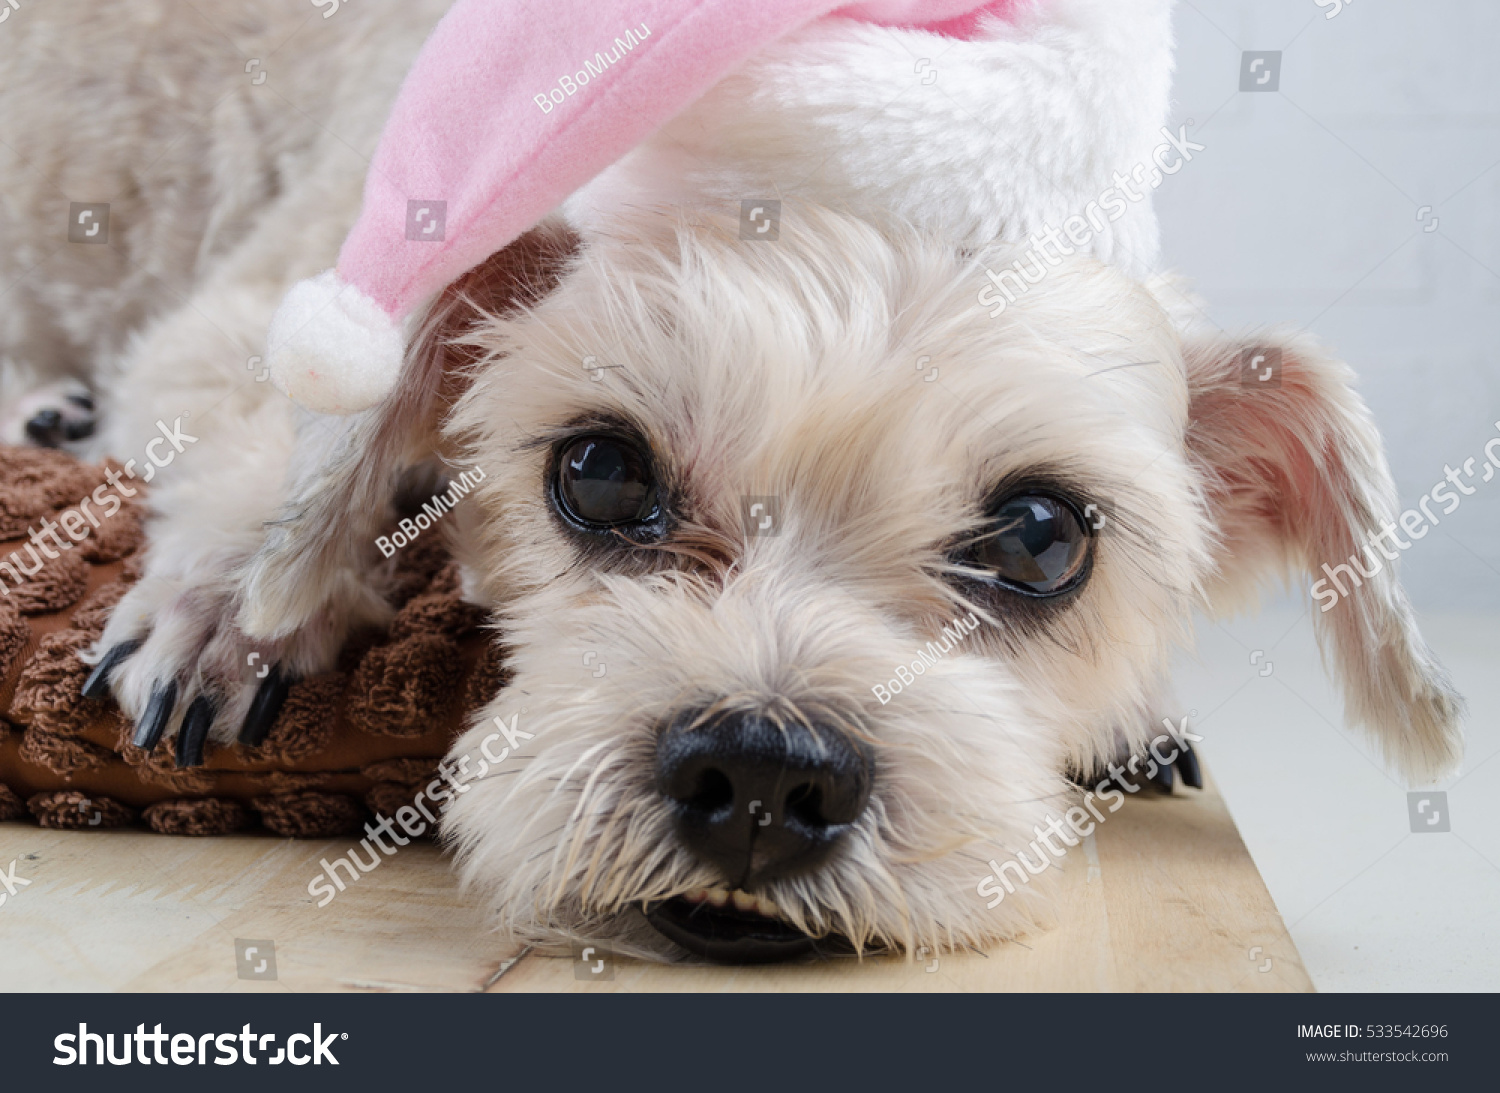 Cute Short Hair Mixed Breed Puppy Stock Photo Download Now